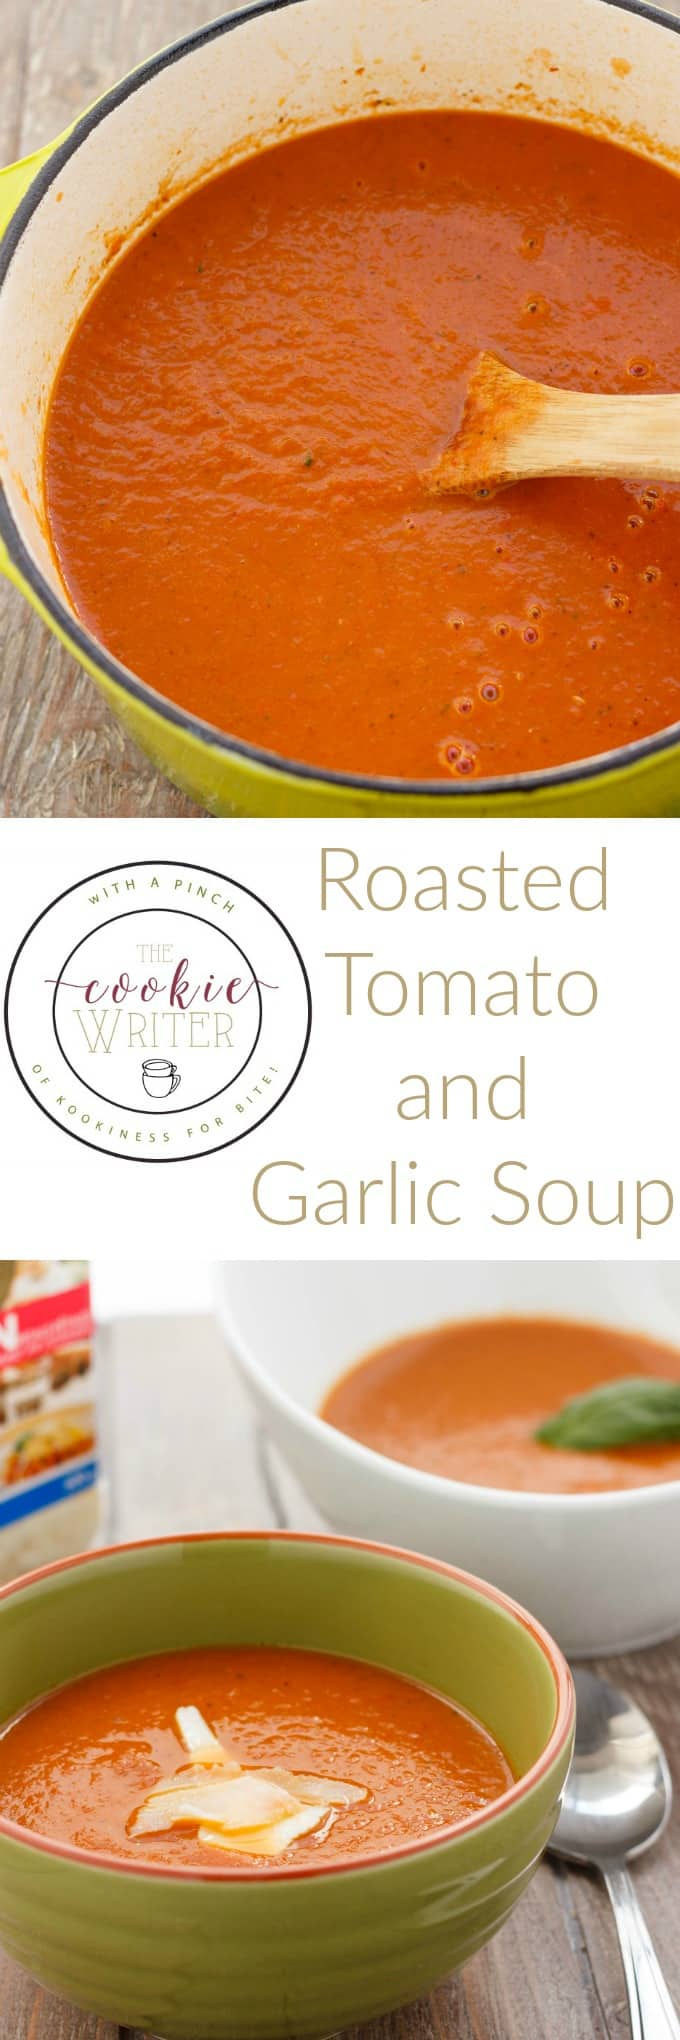 Roasted Tomato and Garlic Soup #healthy #vegan